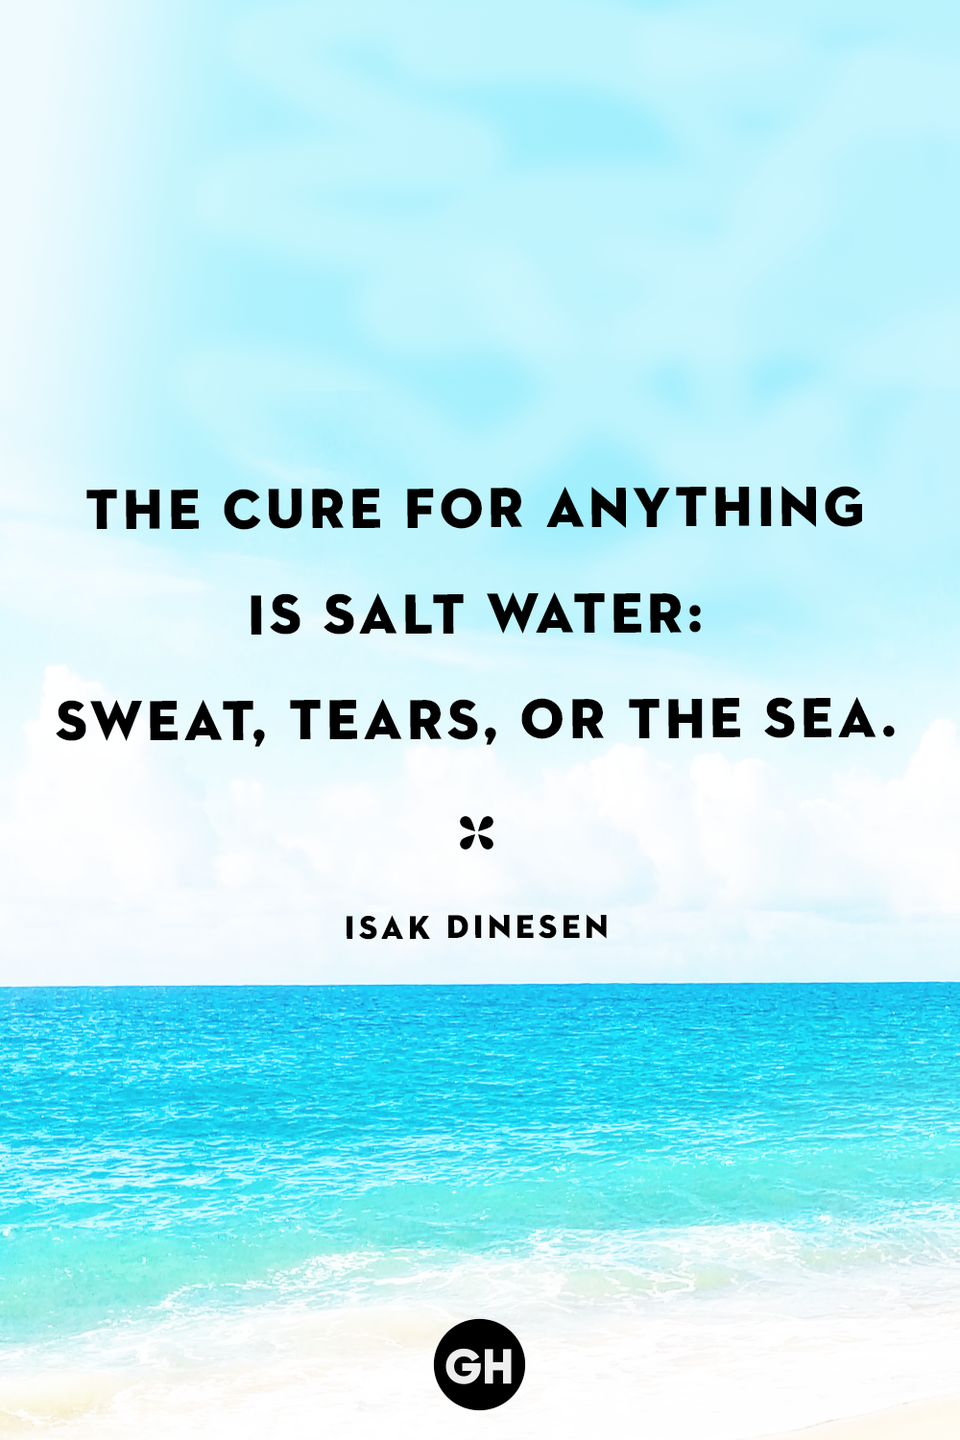 "<p>""The cure for anything is salt water: sweat, tears, or the sea.""</p>"